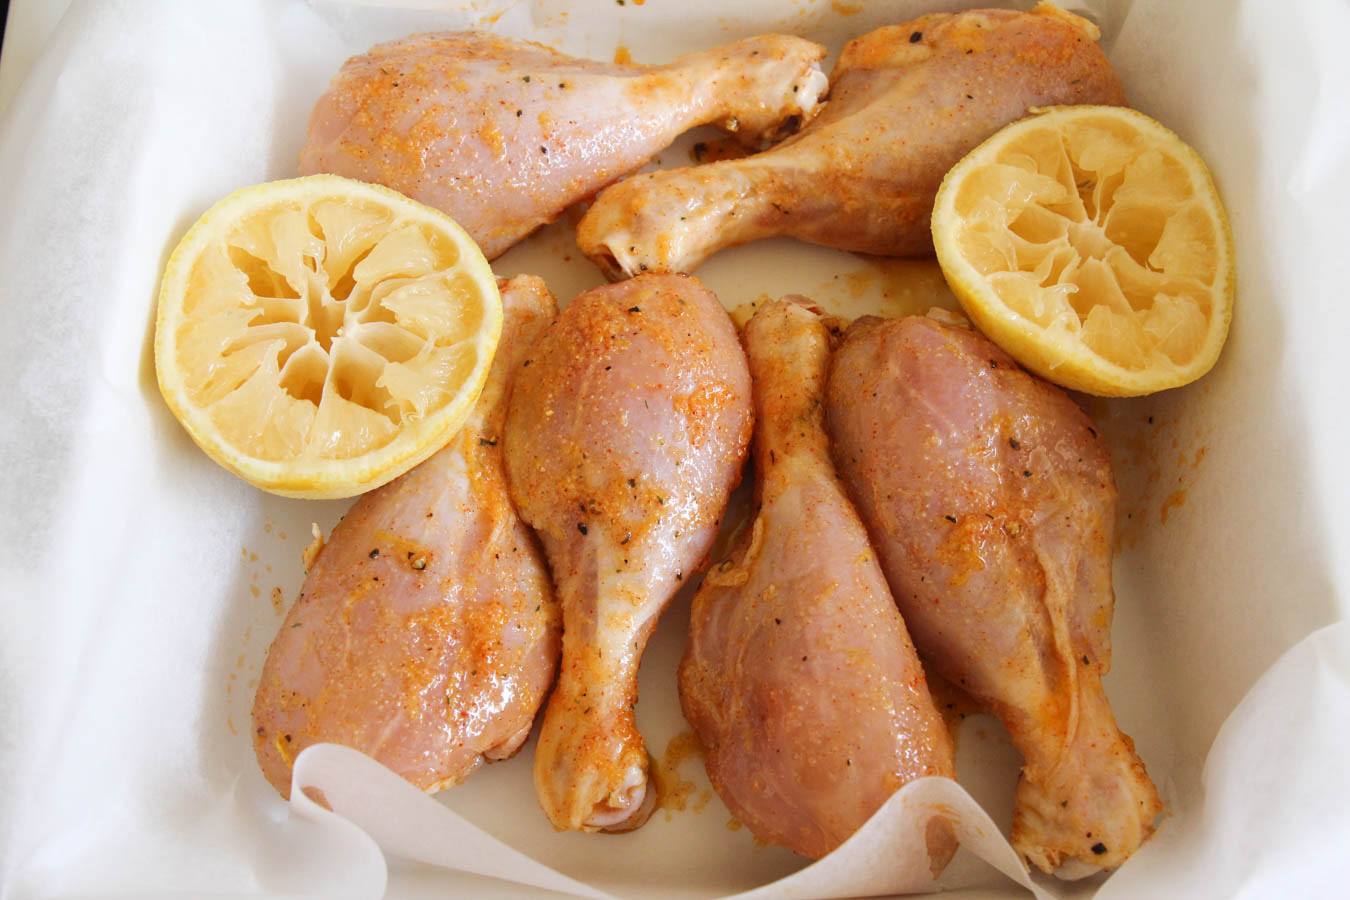 These lemon garlic drumsticks are savory and flavorful, and simple and easy to make. A delicious dinner the whole family will love!